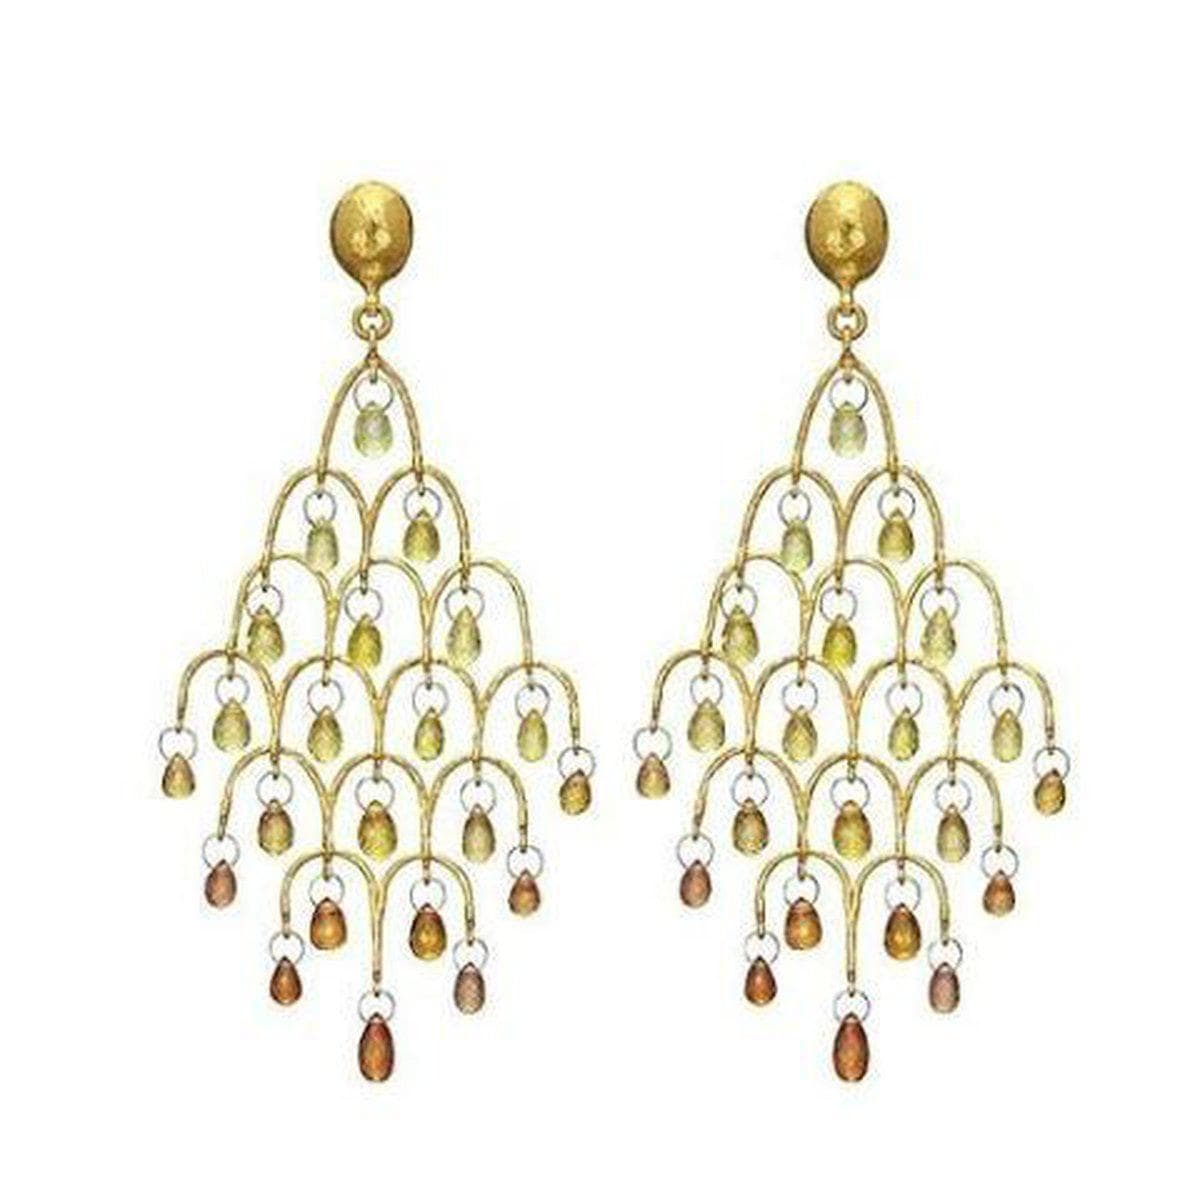 Delicate Hue 24K Gold Sapphire Earrings - E-CHDL-FSB-OY-L-97JT-GURHAN-Renee Taylor Gallery